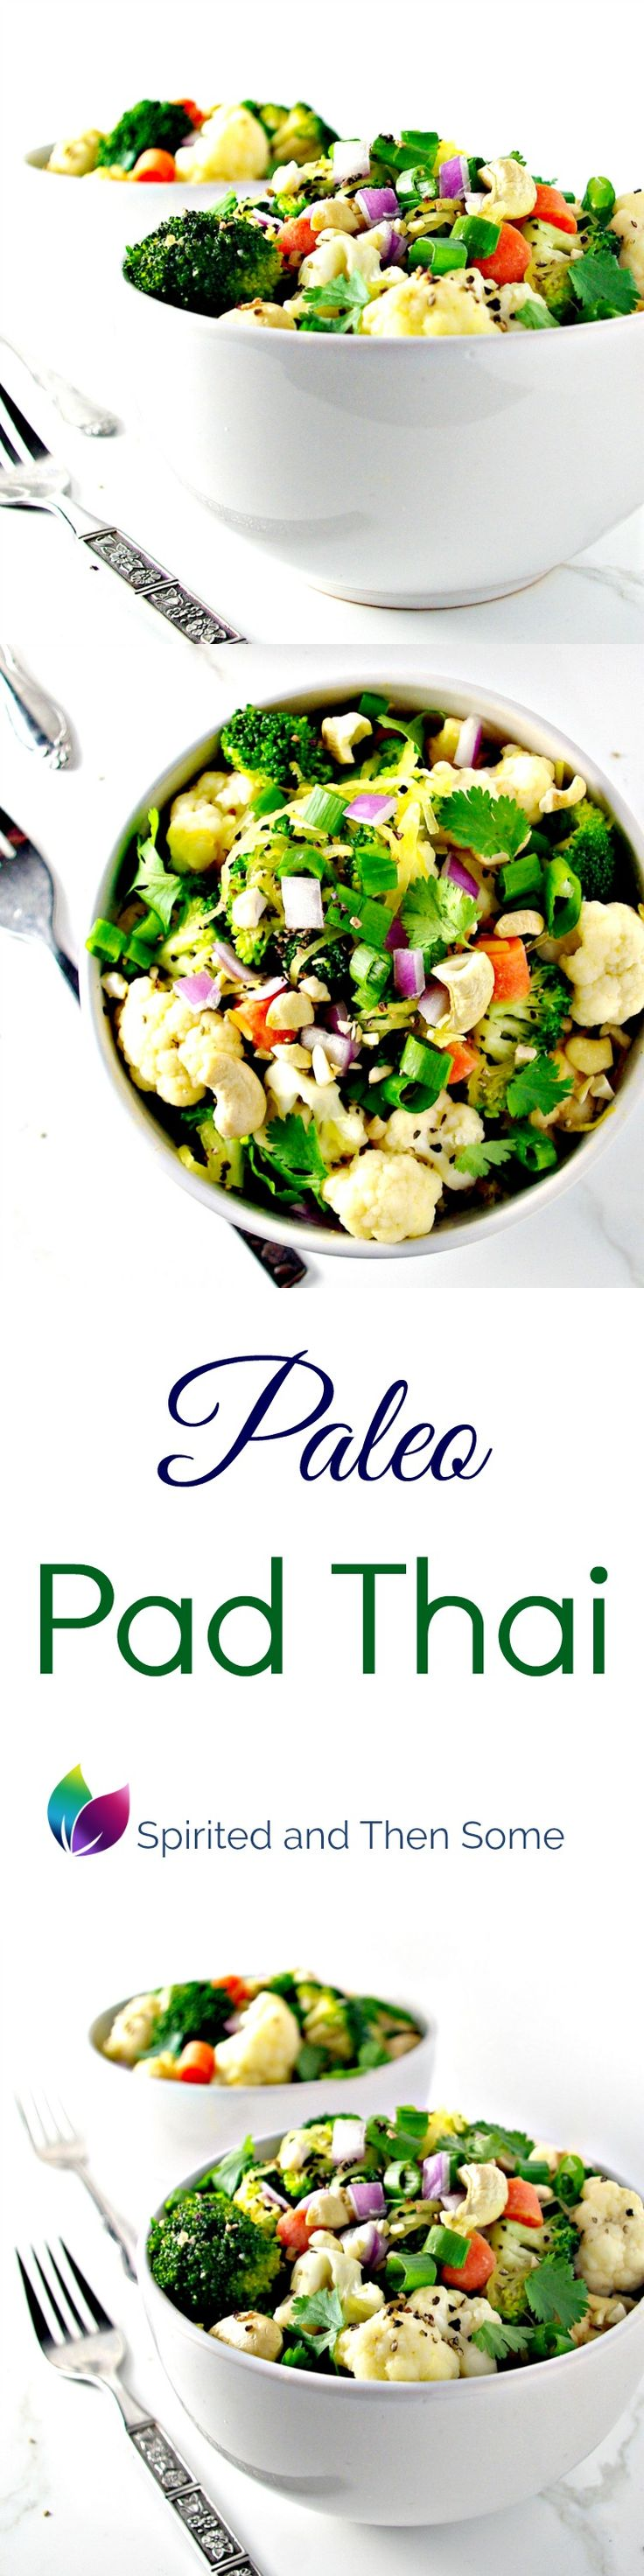 Paleo Pad Thai is a delicious blend of flavors and perfect for date night in! | spiritedandthensome.com